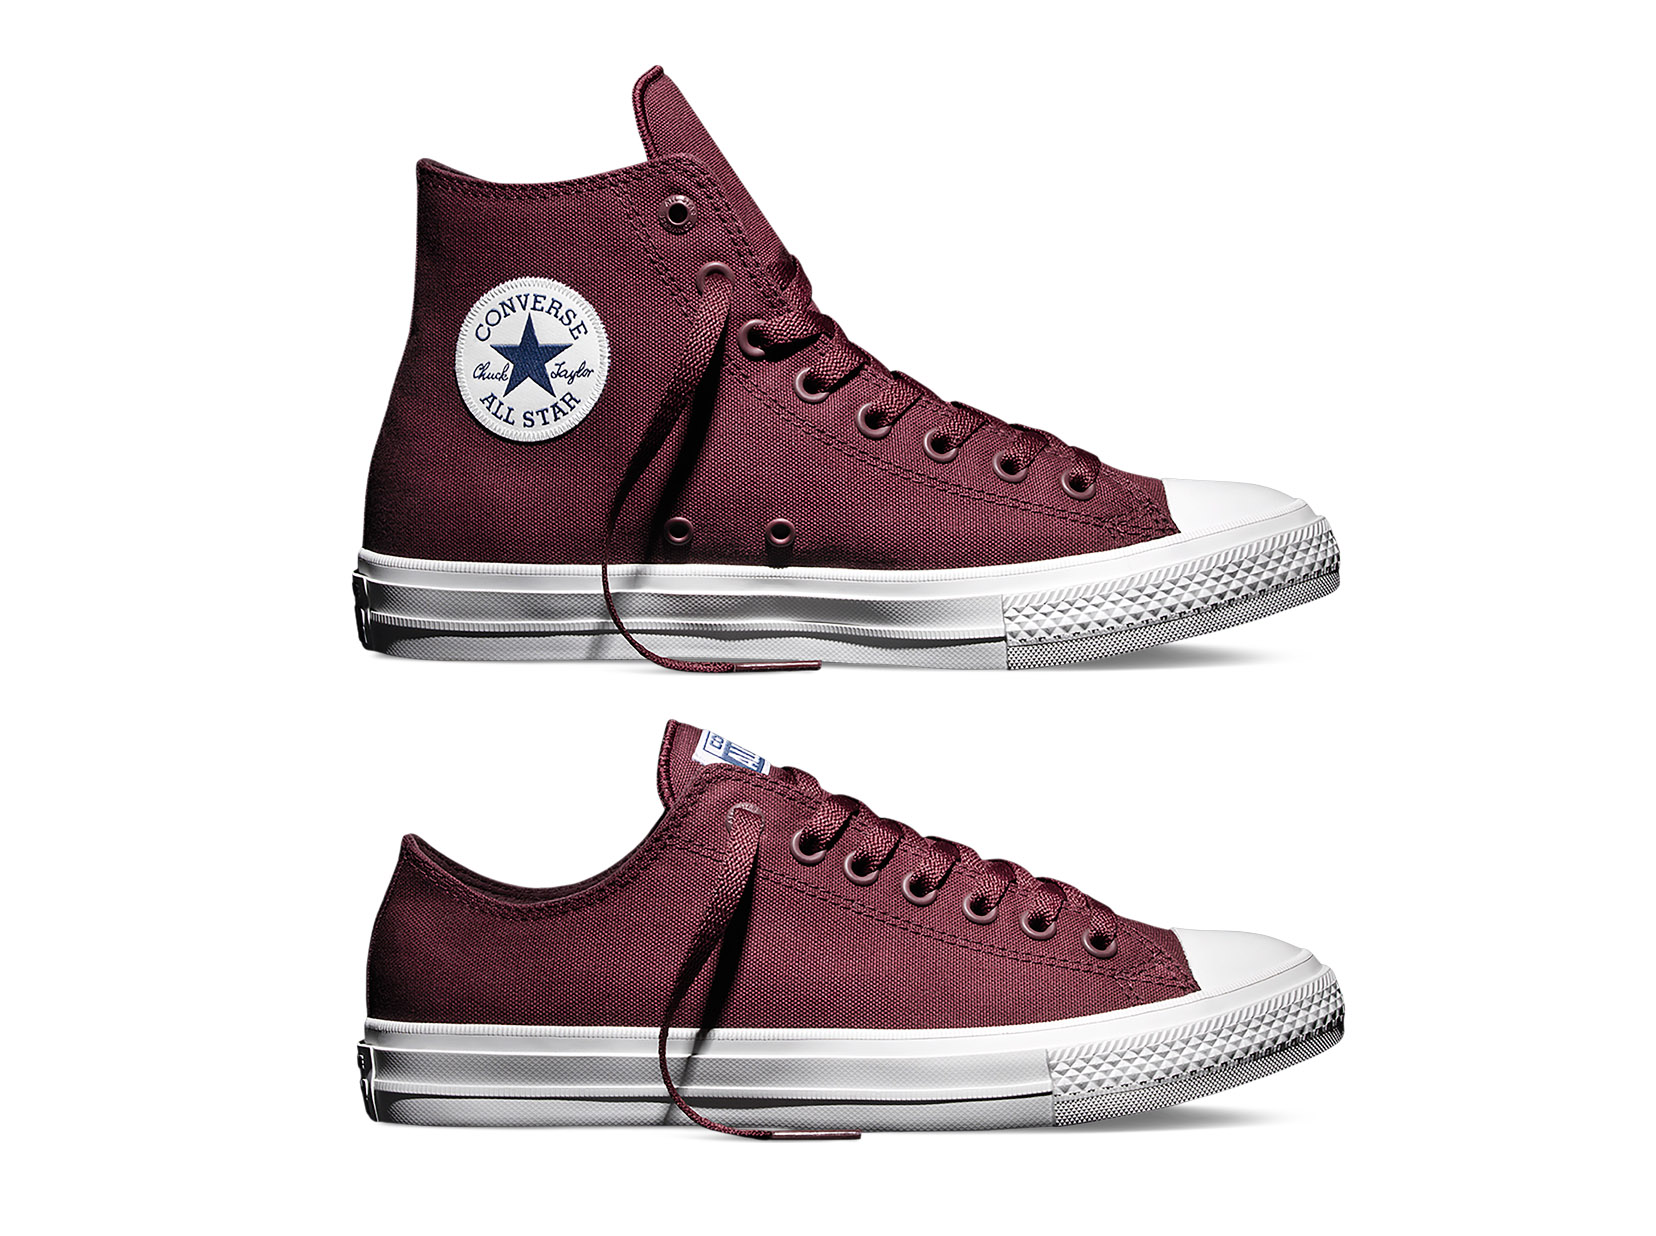 de0fba1afe78 Converse Chuck Taylor All Star II  Bordeaux  - Available Now - WearTesters